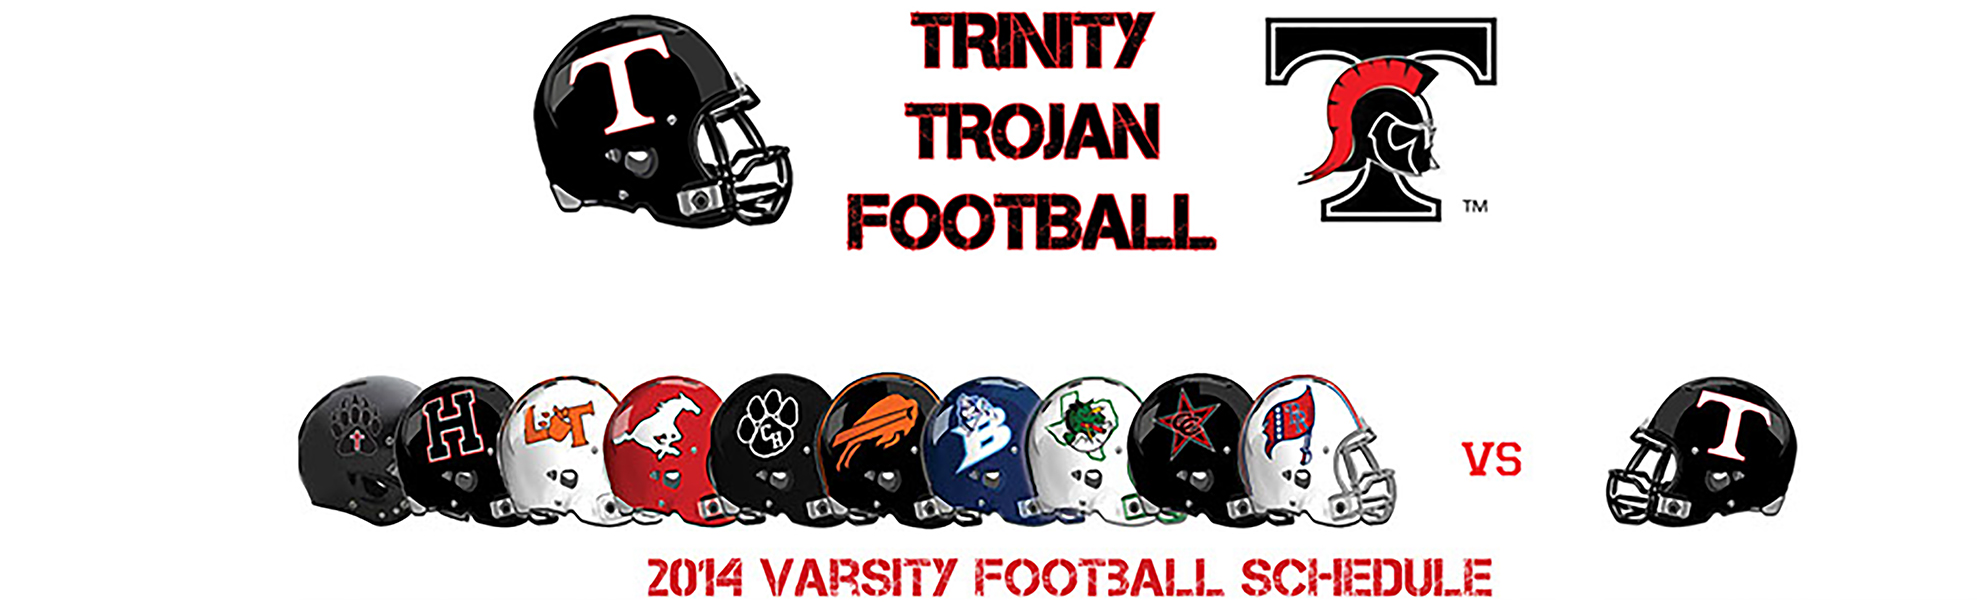 Trinity Football Euless Schedule 2013